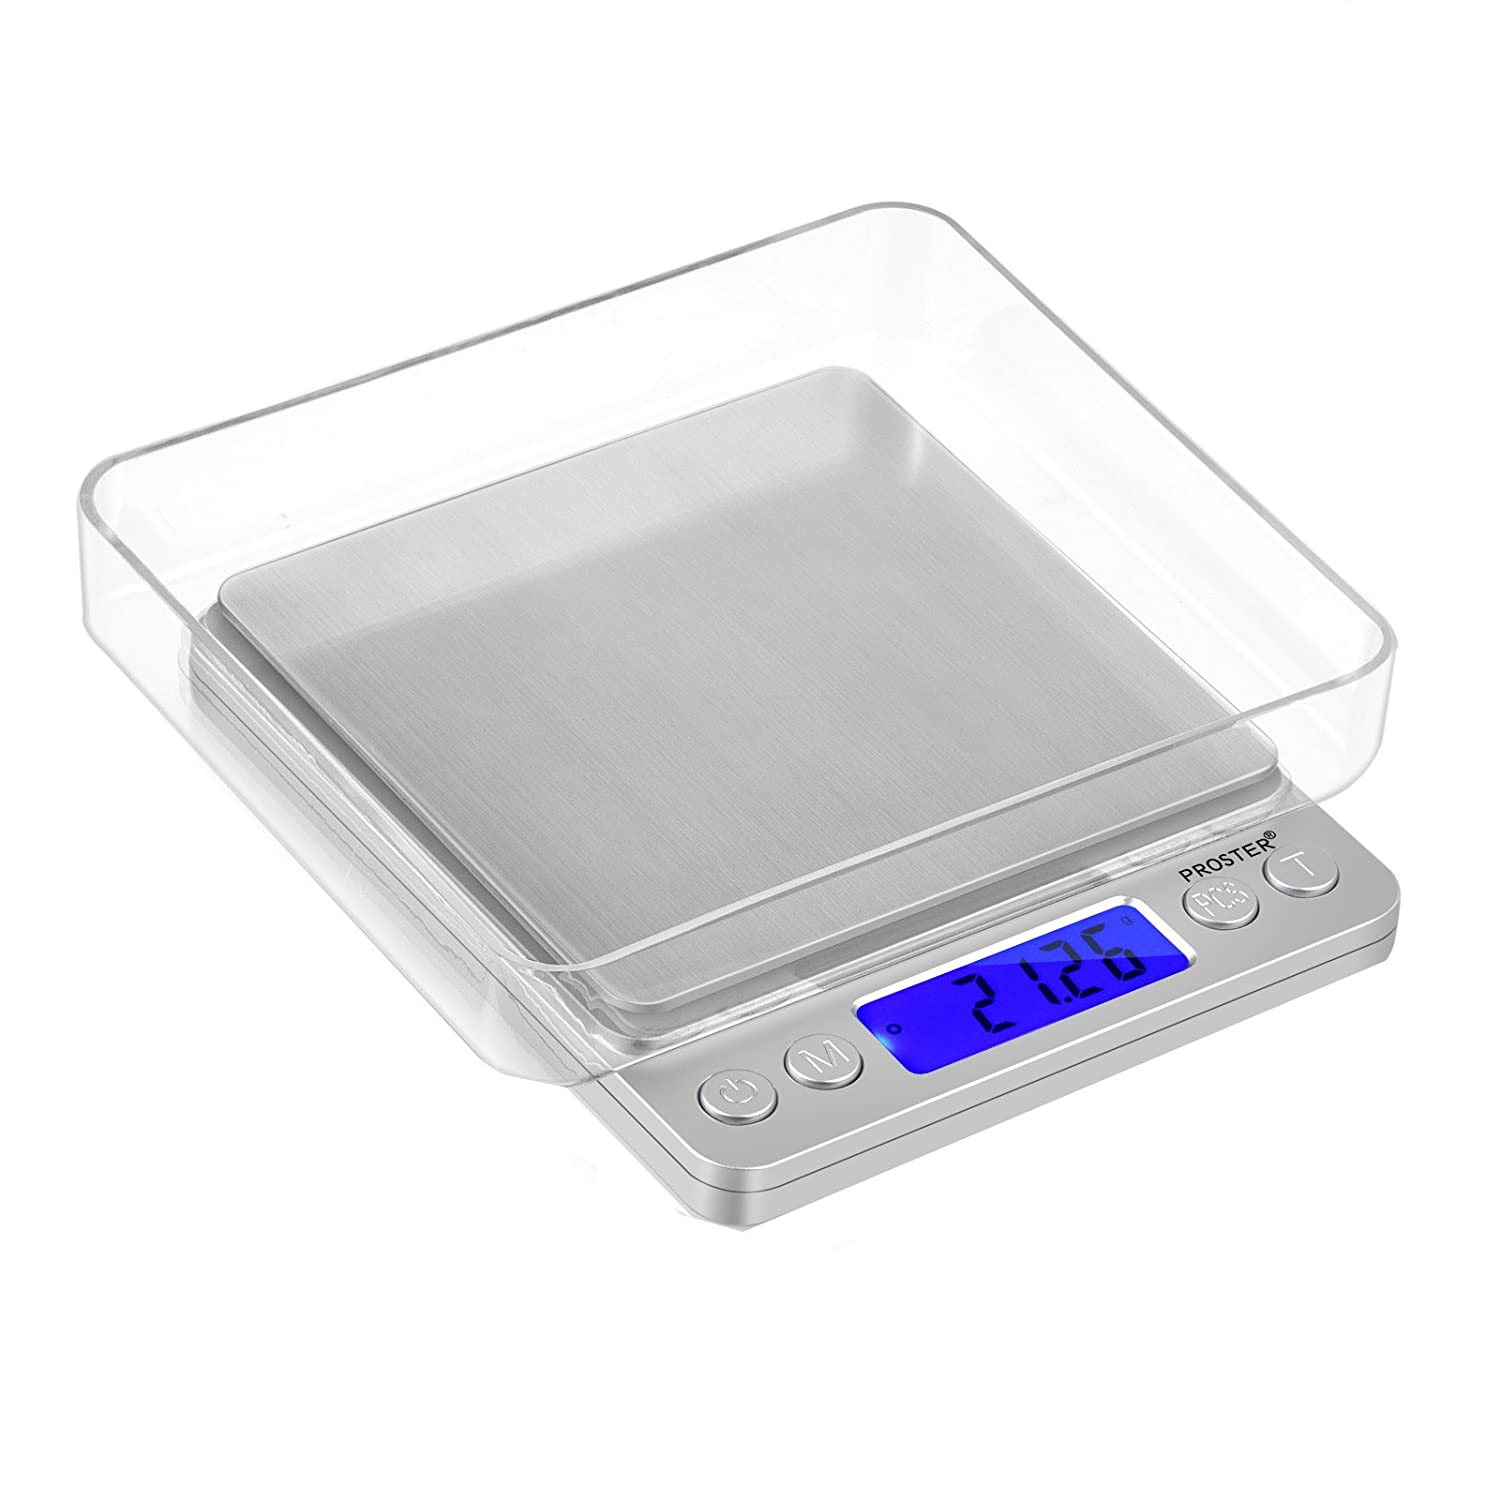 Food Scale Kamtop Mini Digital Pocket Scale 0.01-500g Kitchen Scale with Backlit LCD Display Weighing Scale for Kitchen Food Fruit Jewelry Weighing with 2 Trays PST051-DE